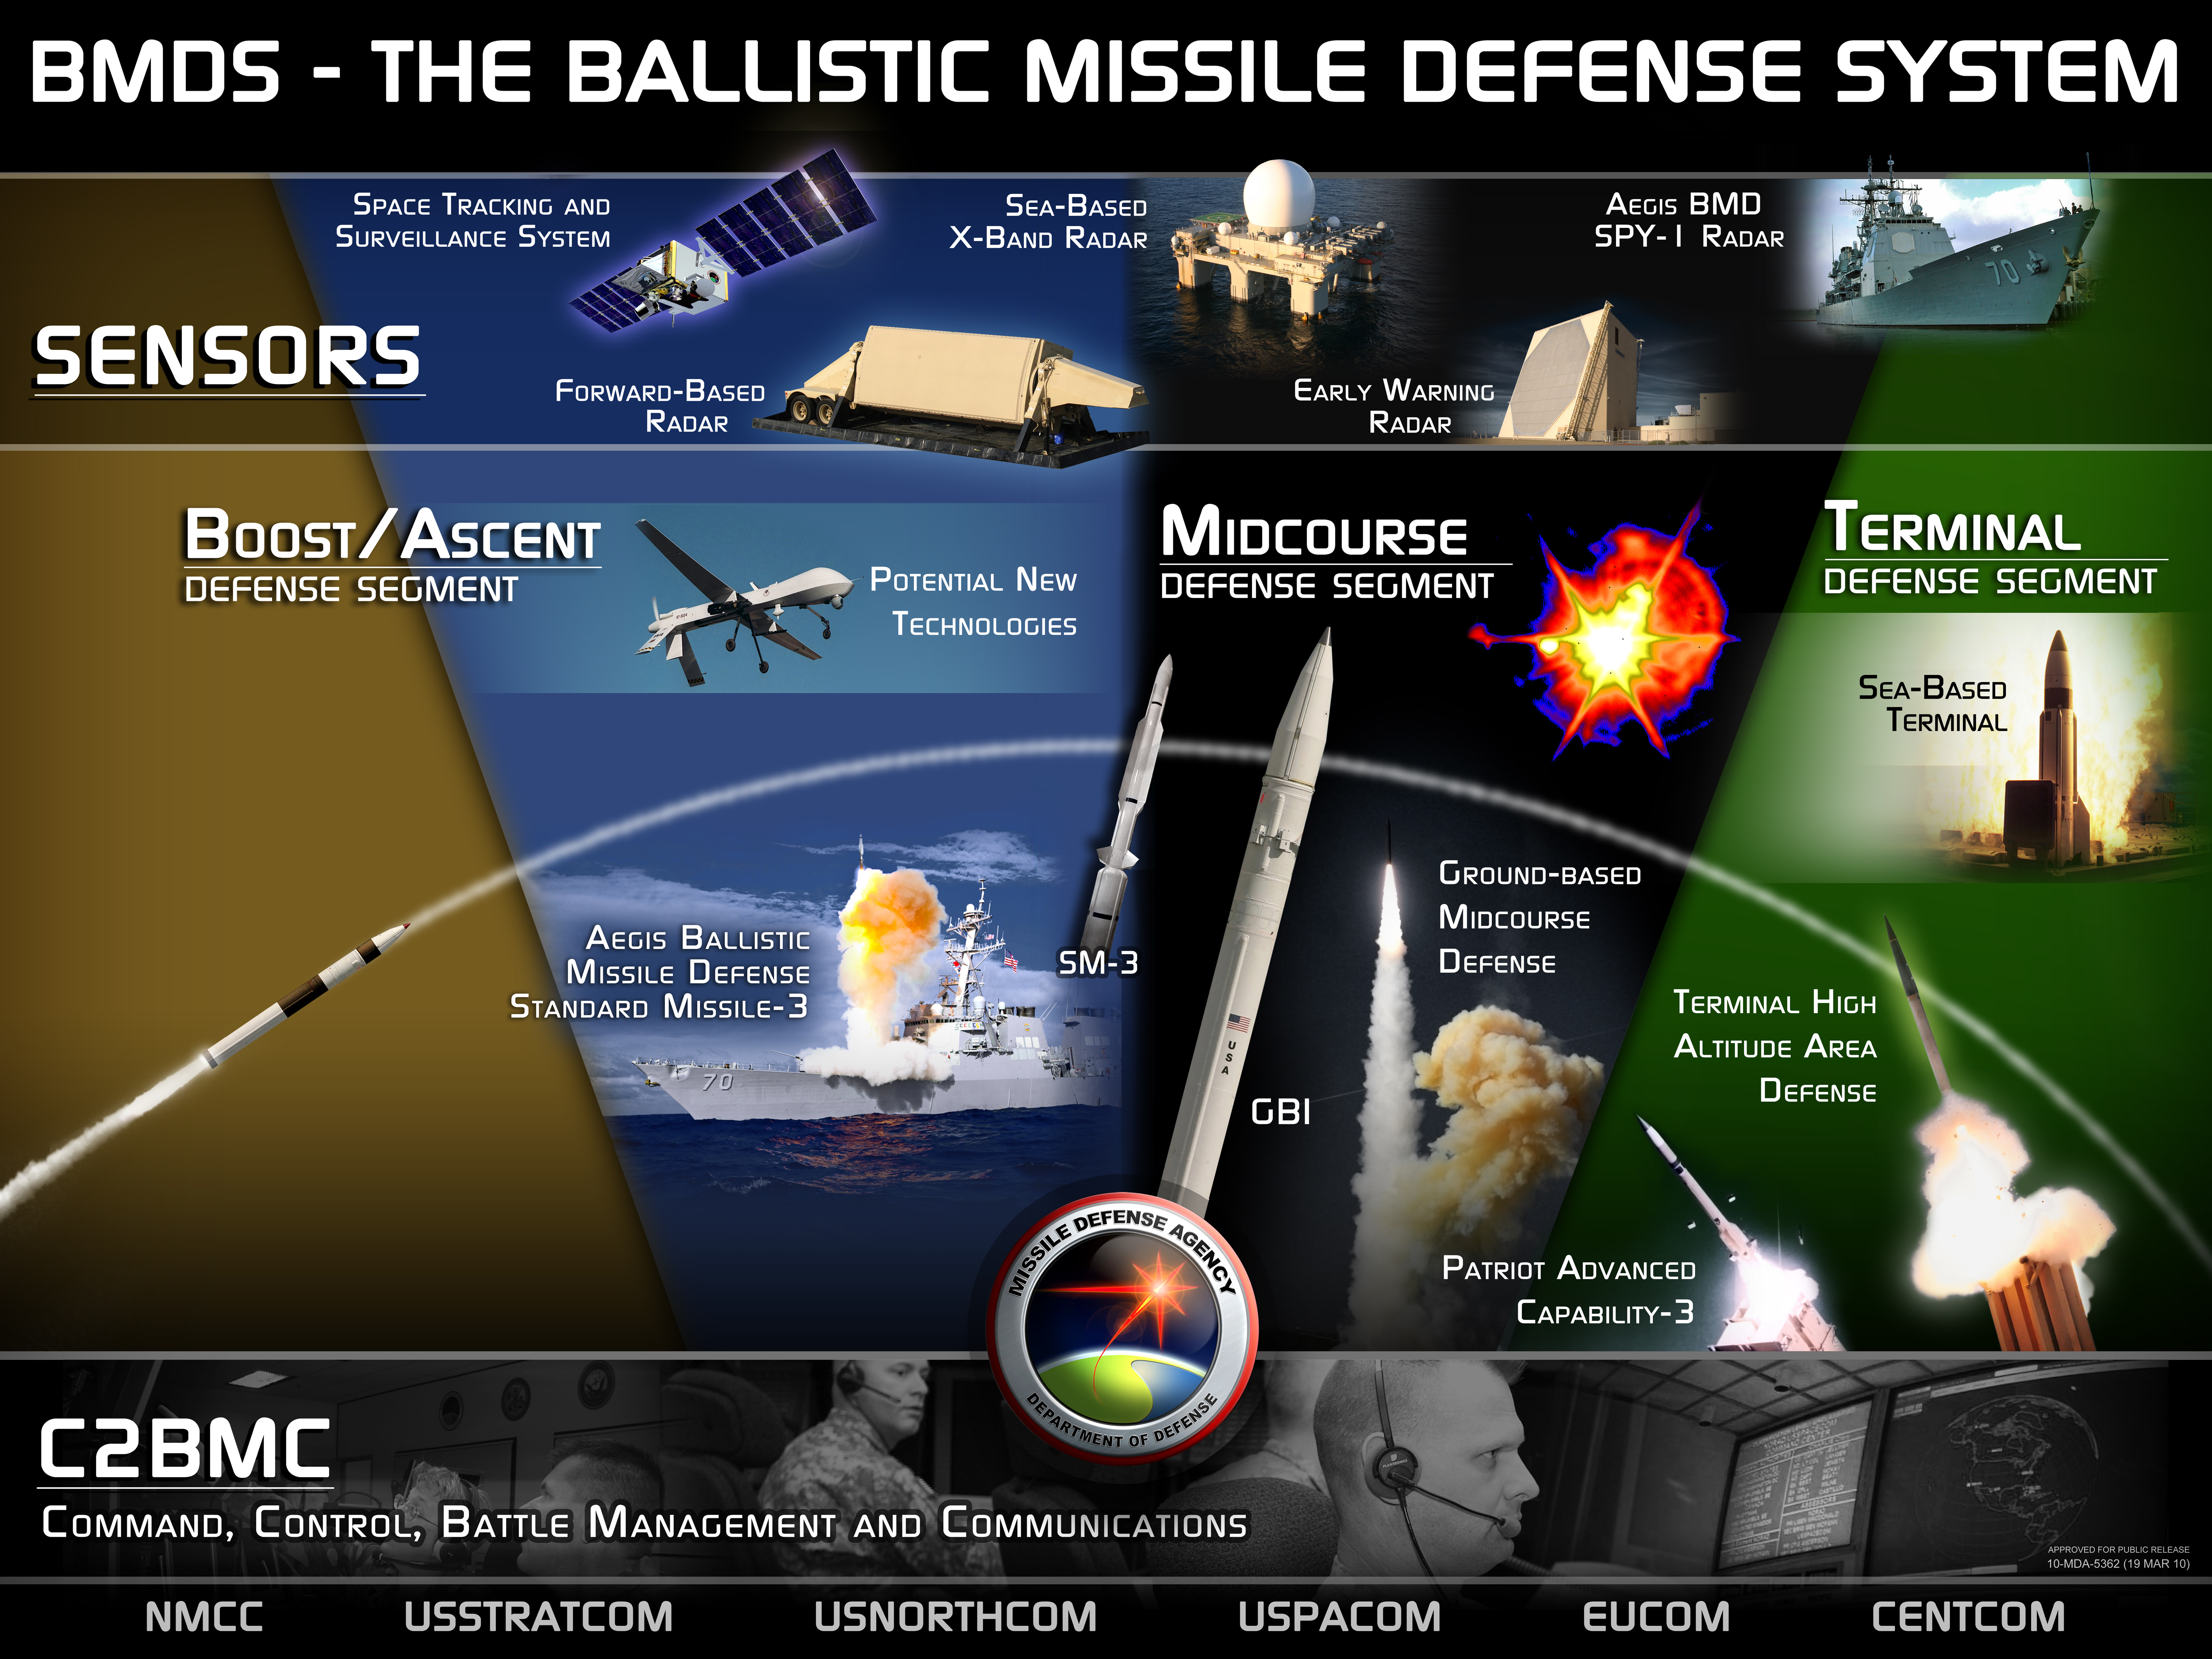 United States national missile defense